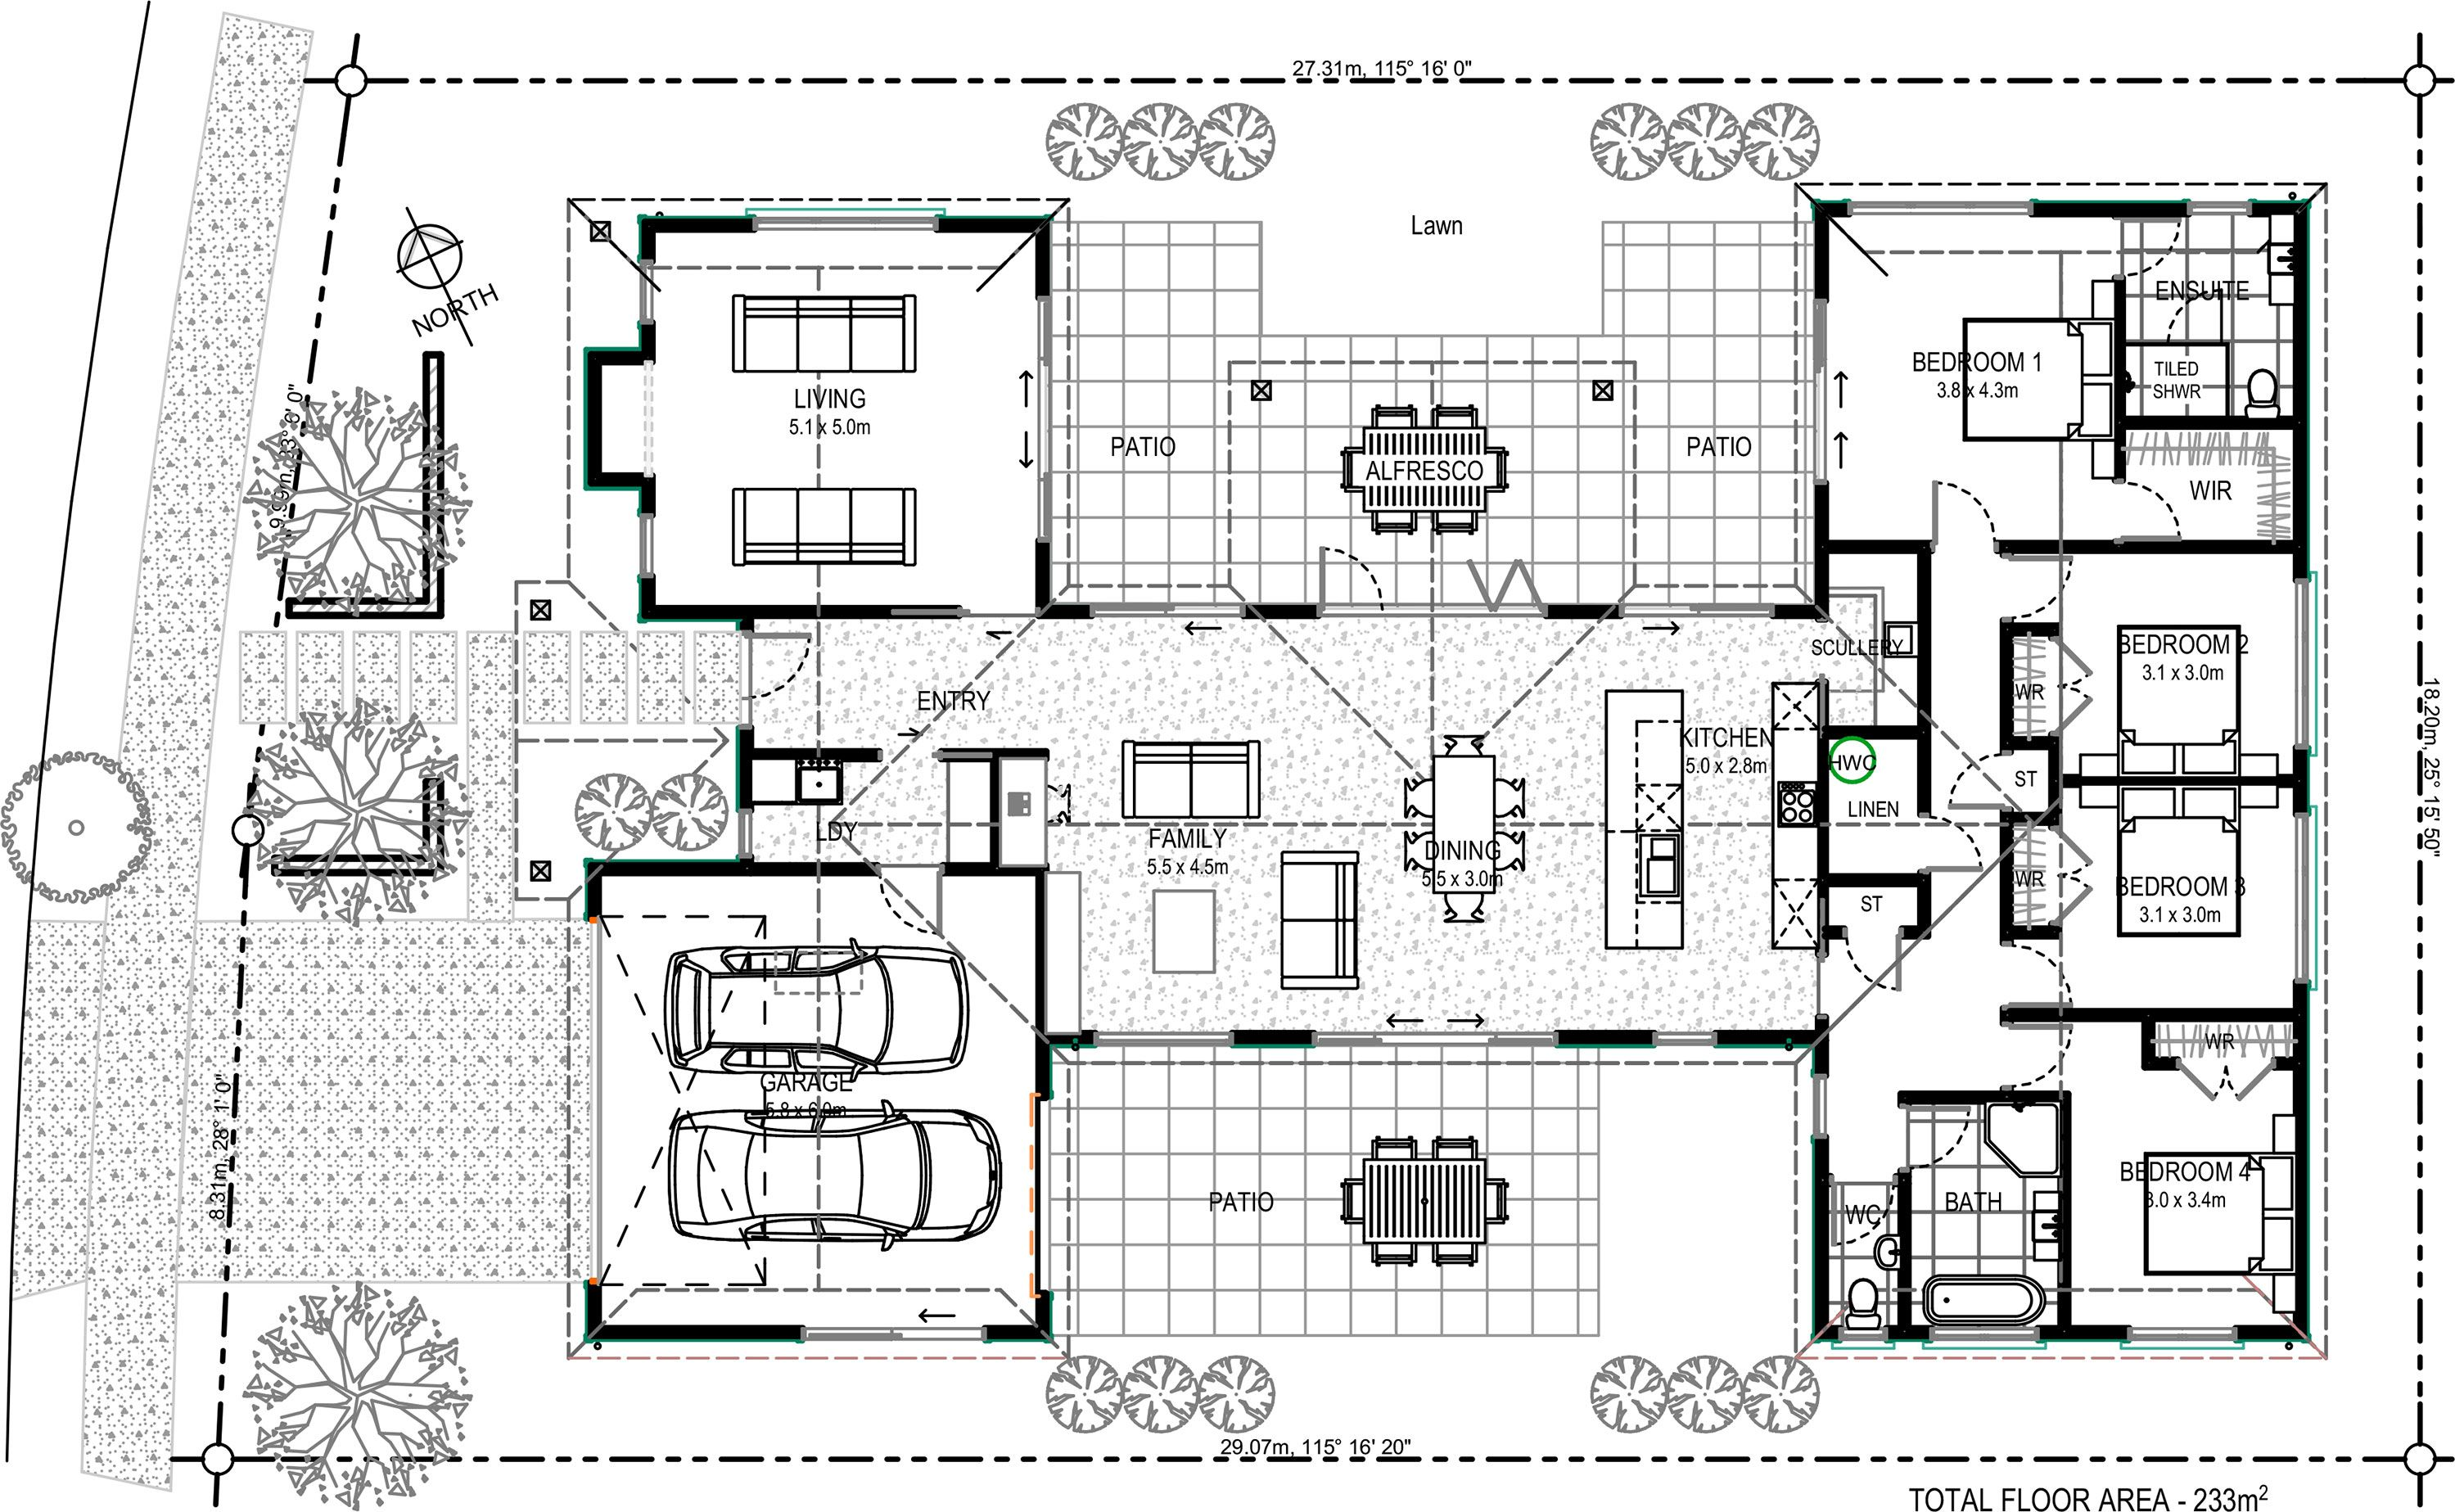 Floor Plan Friday 4 bedroom, with family, living and